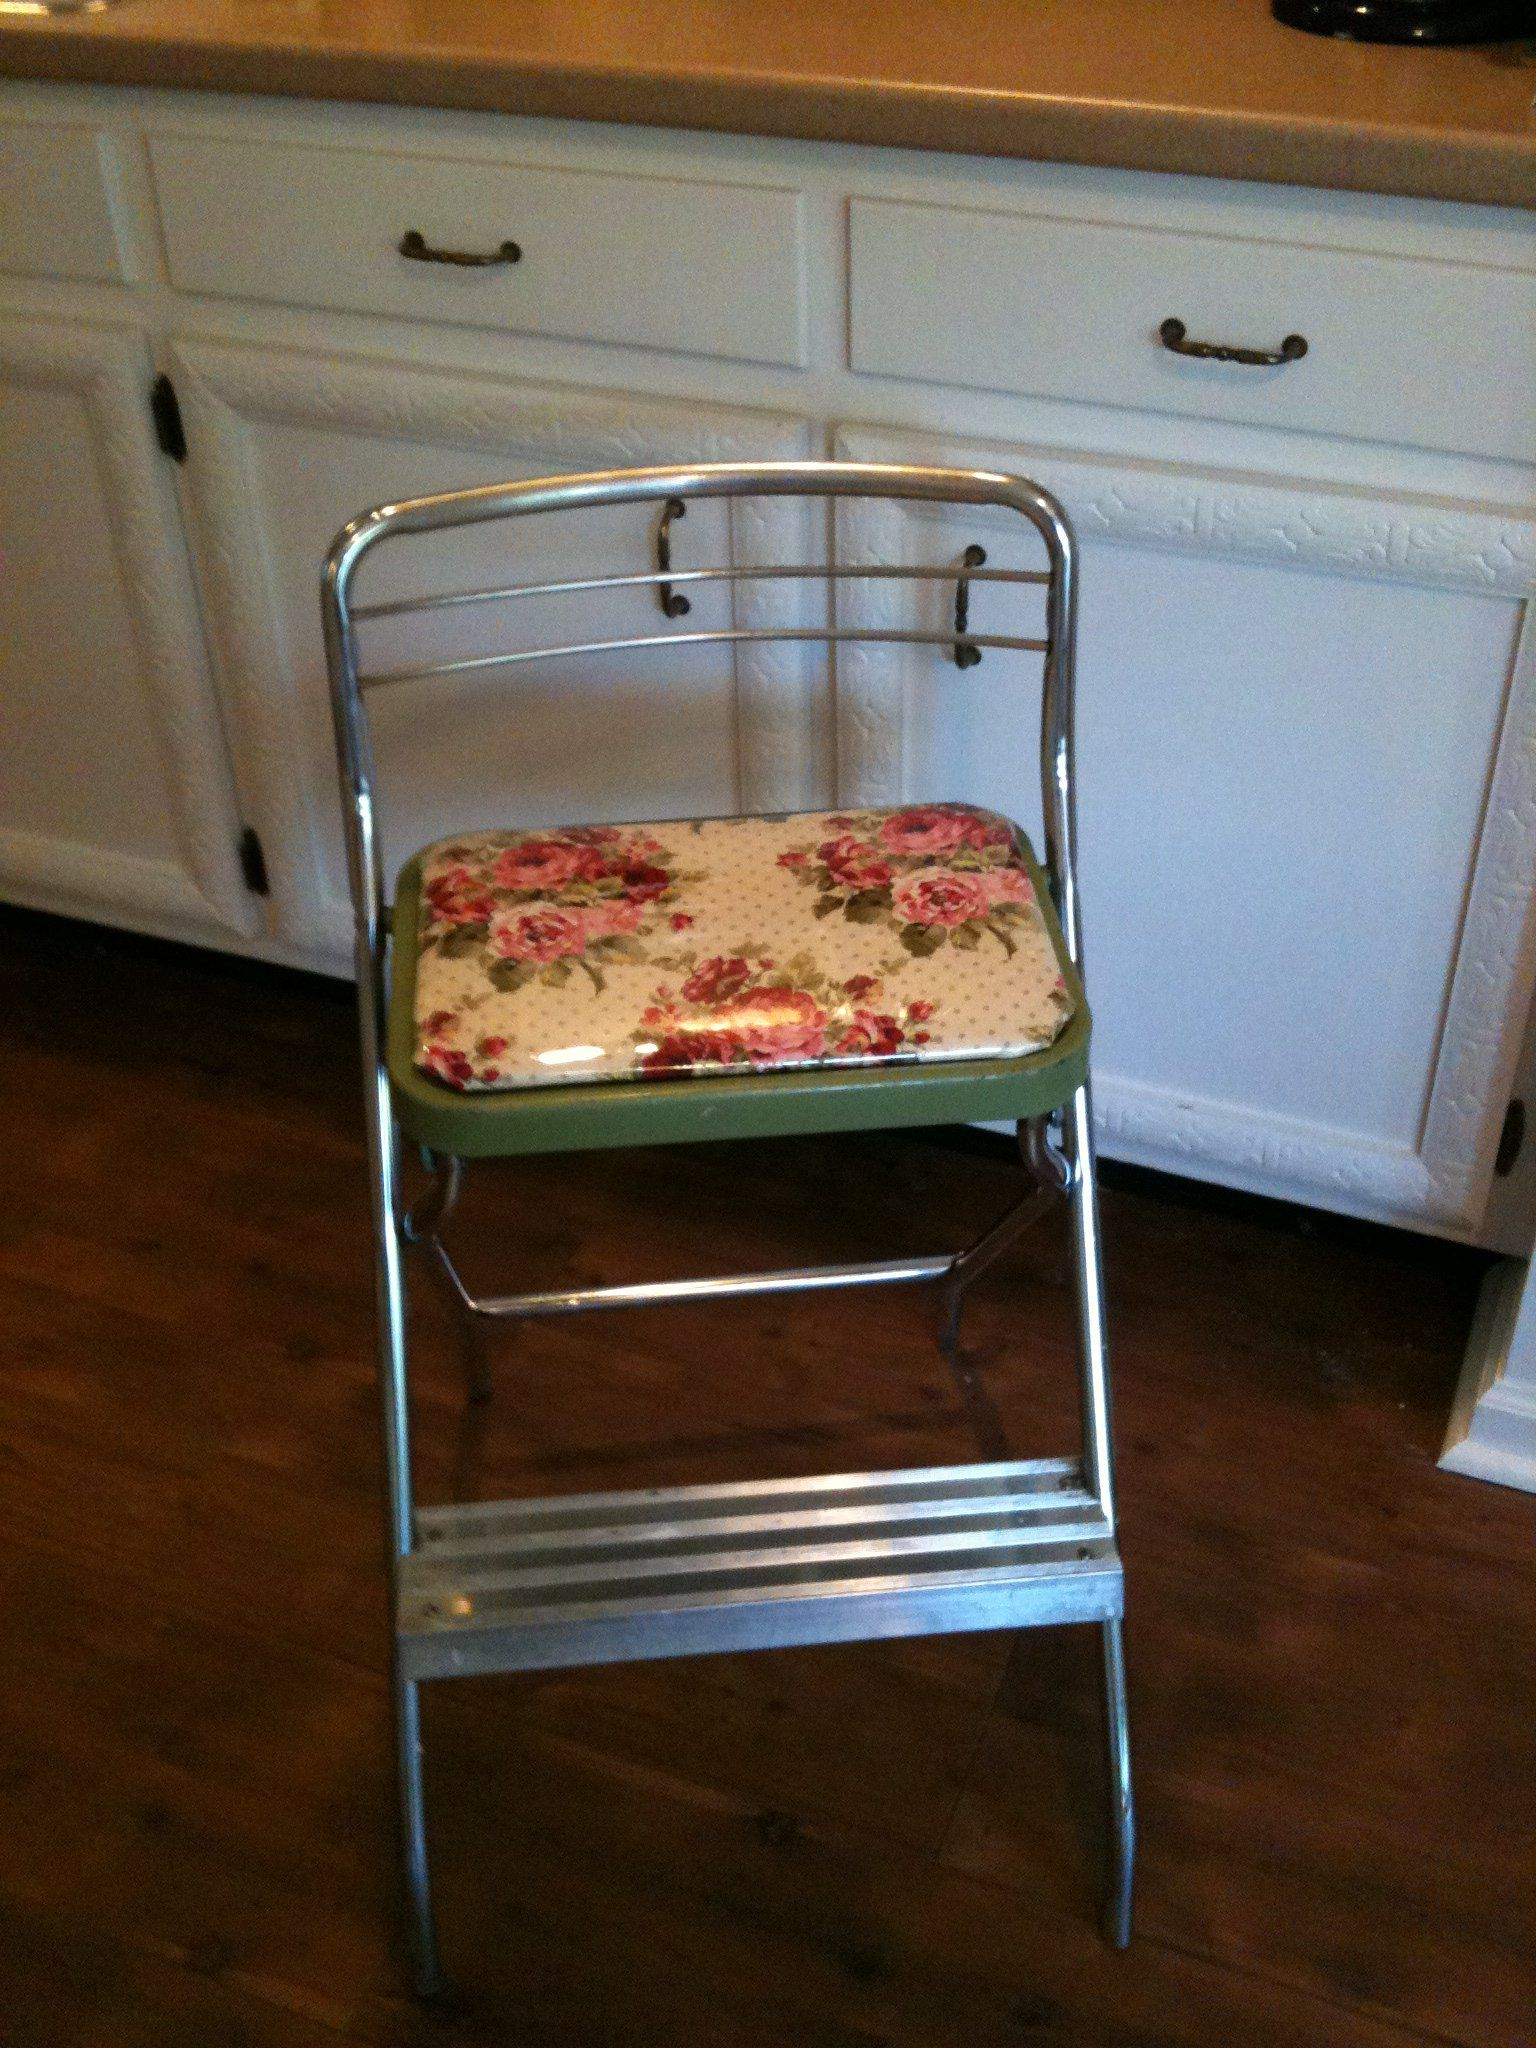 Brilliant Thrift Store Find Of A 60S Step Stool Recovered In A Floral Gmtry Best Dining Table And Chair Ideas Images Gmtryco